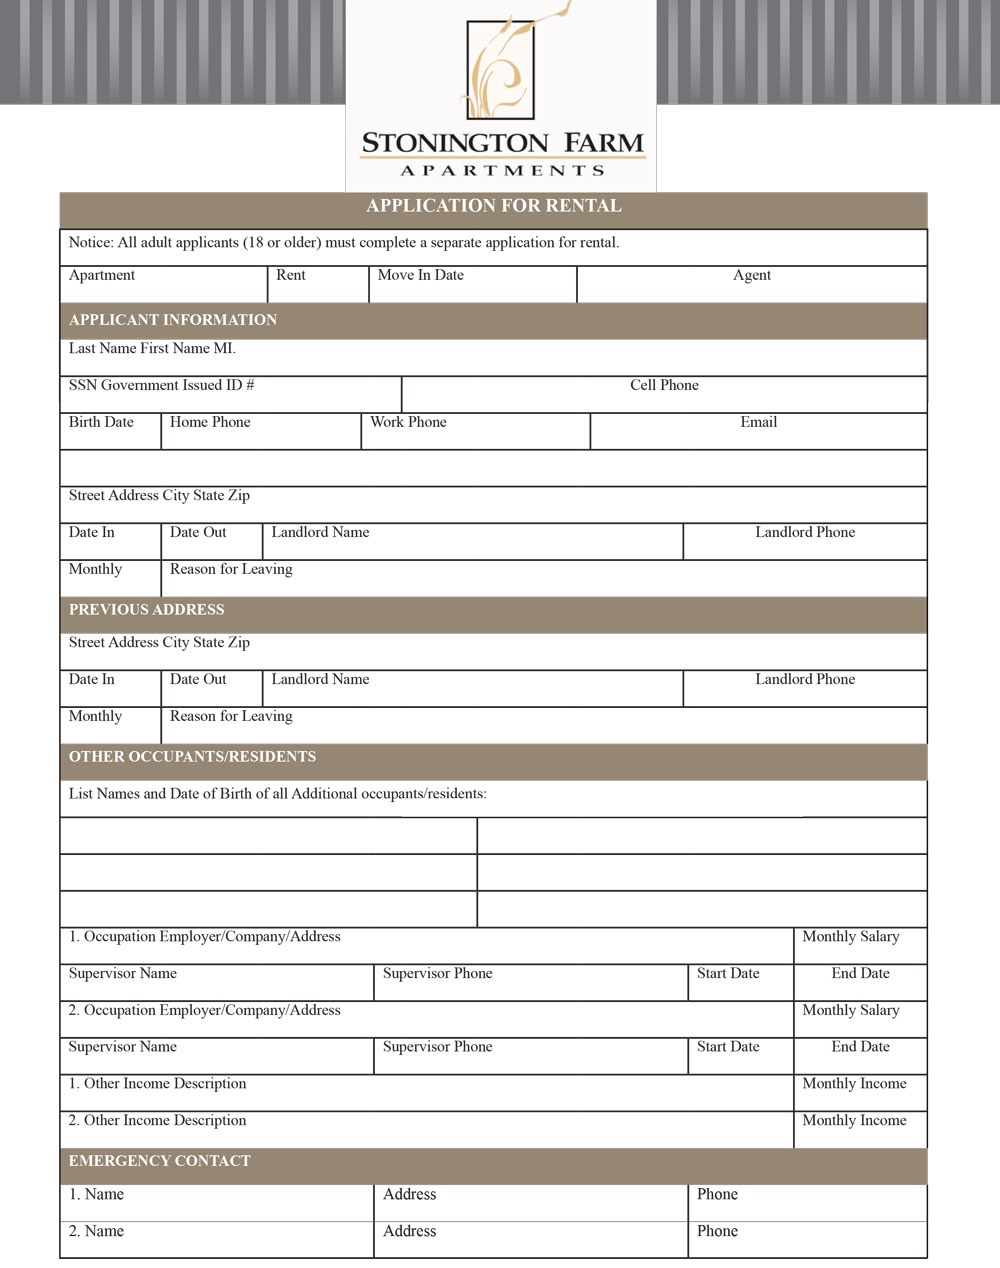 Stonington-Application-1